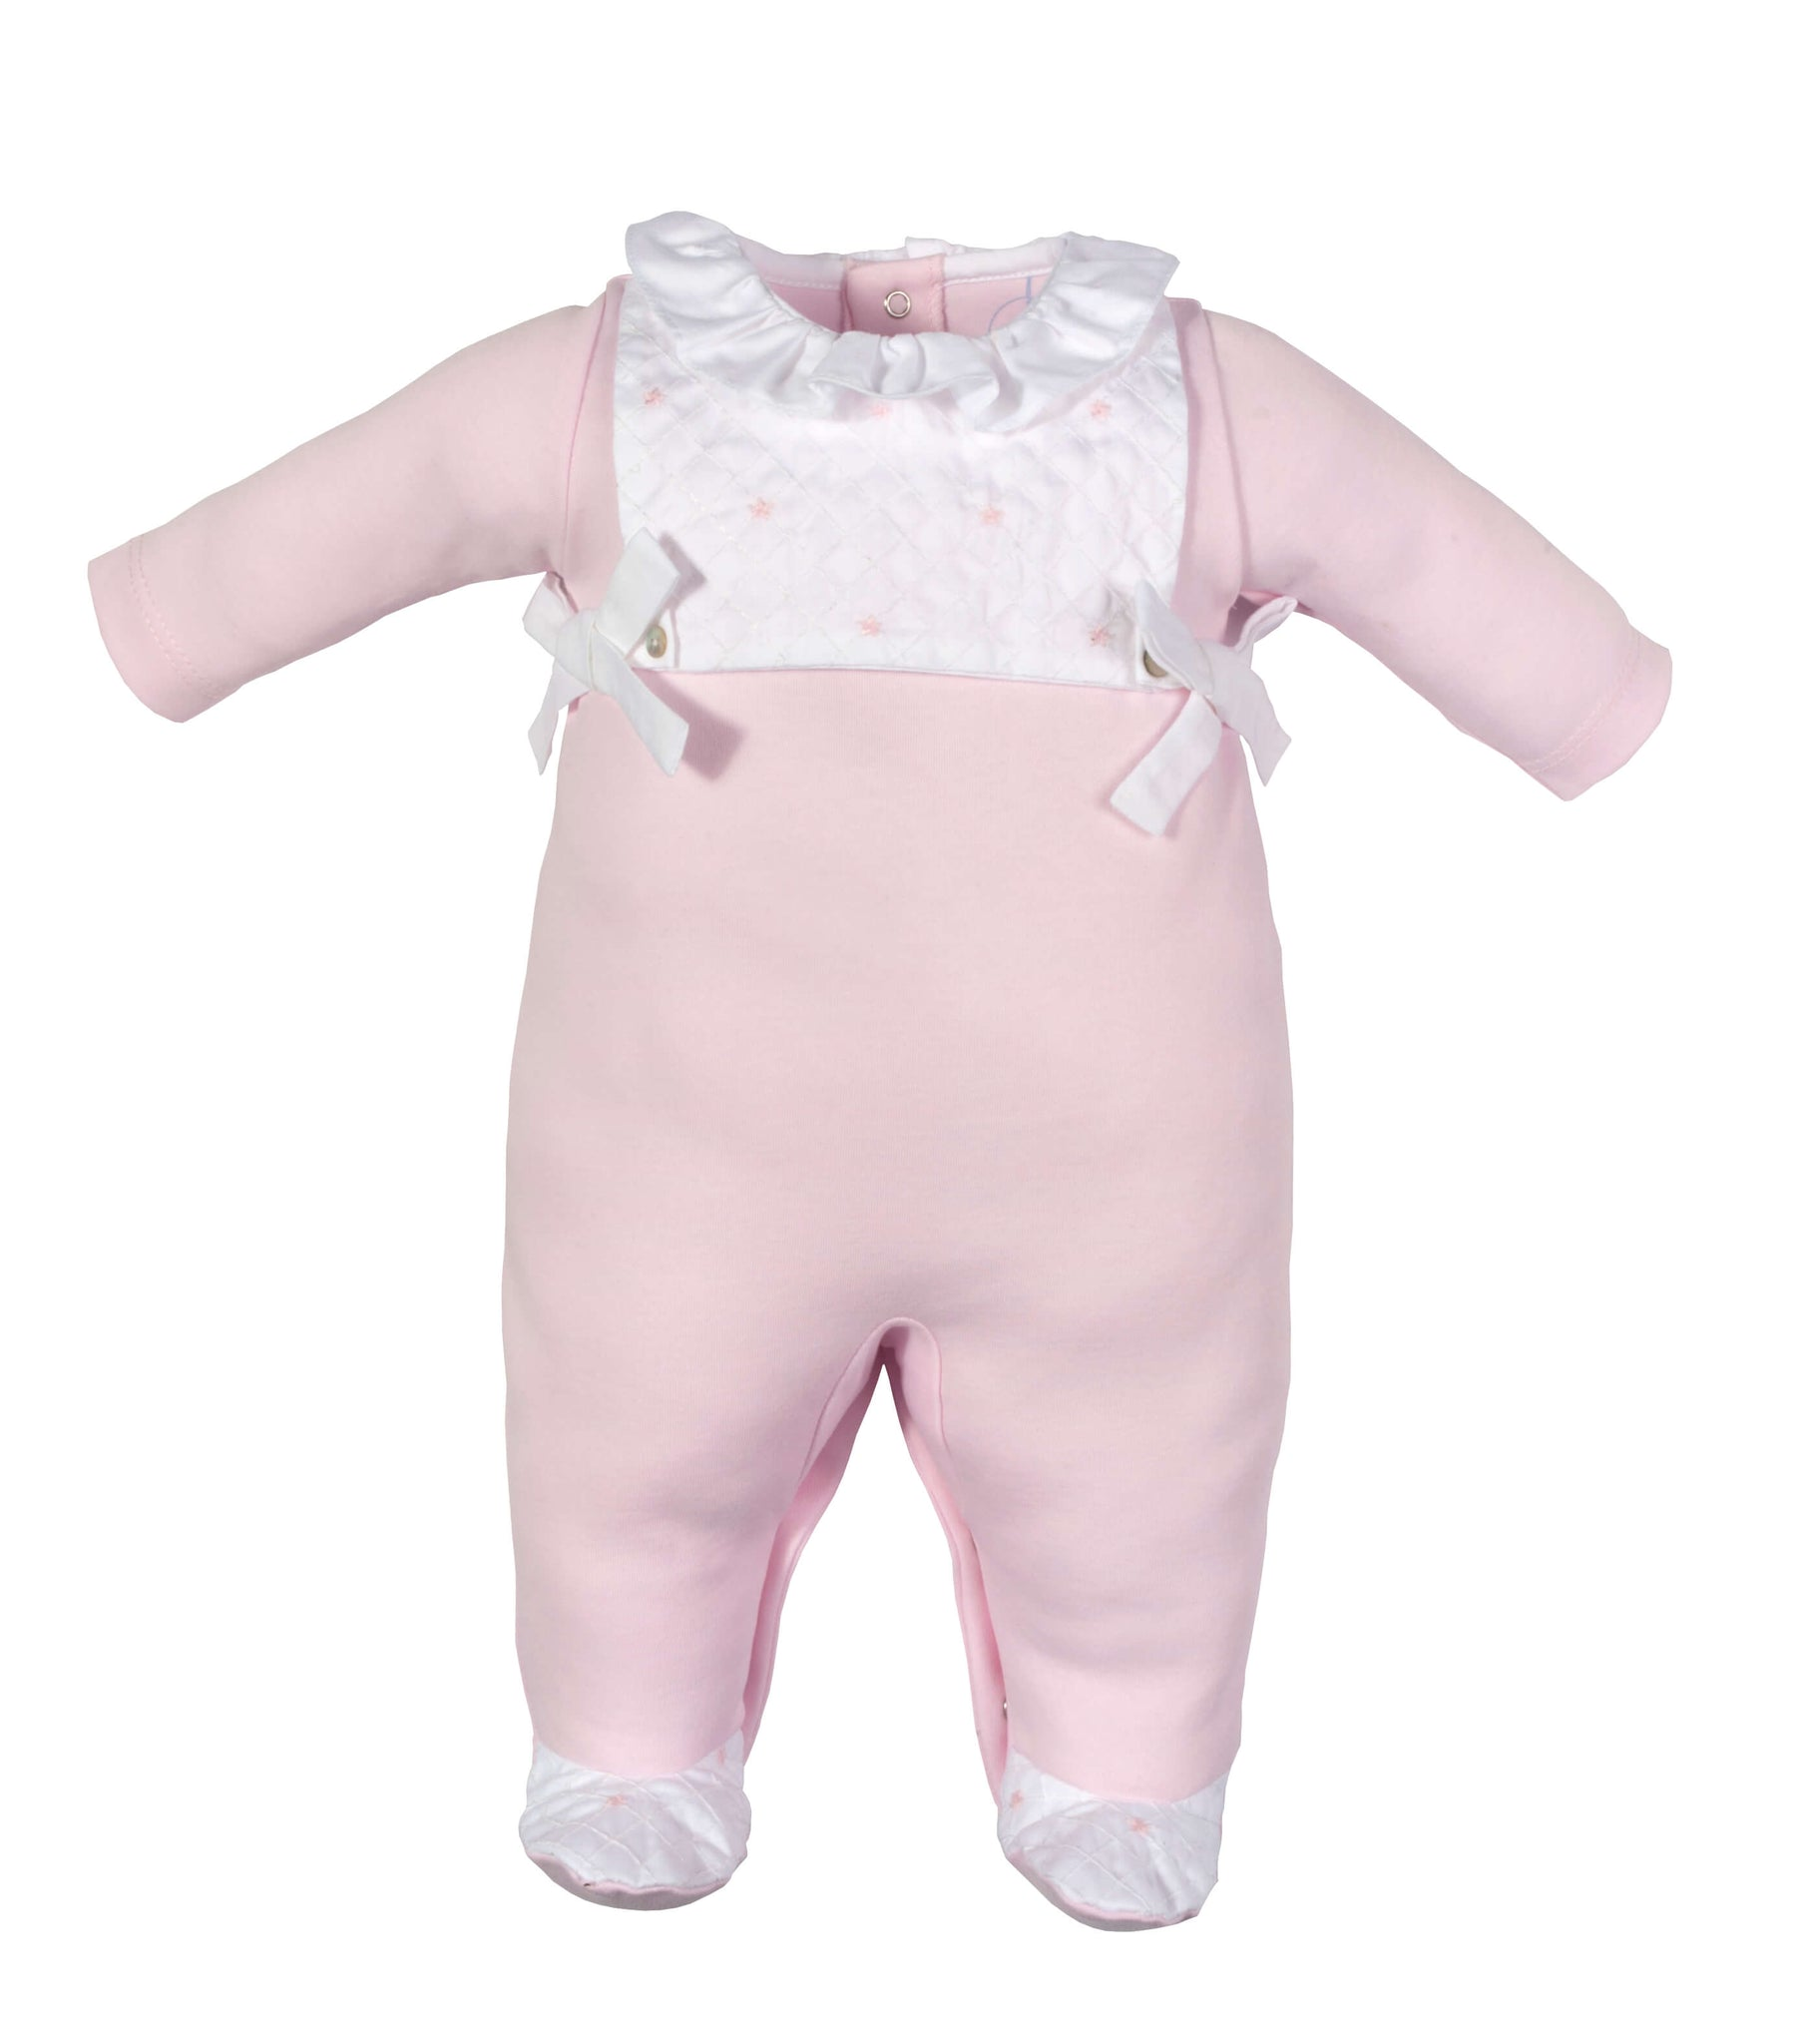 LARANJINHA PINK STRETCHIE WITH SMOCKING BIB DETAIL